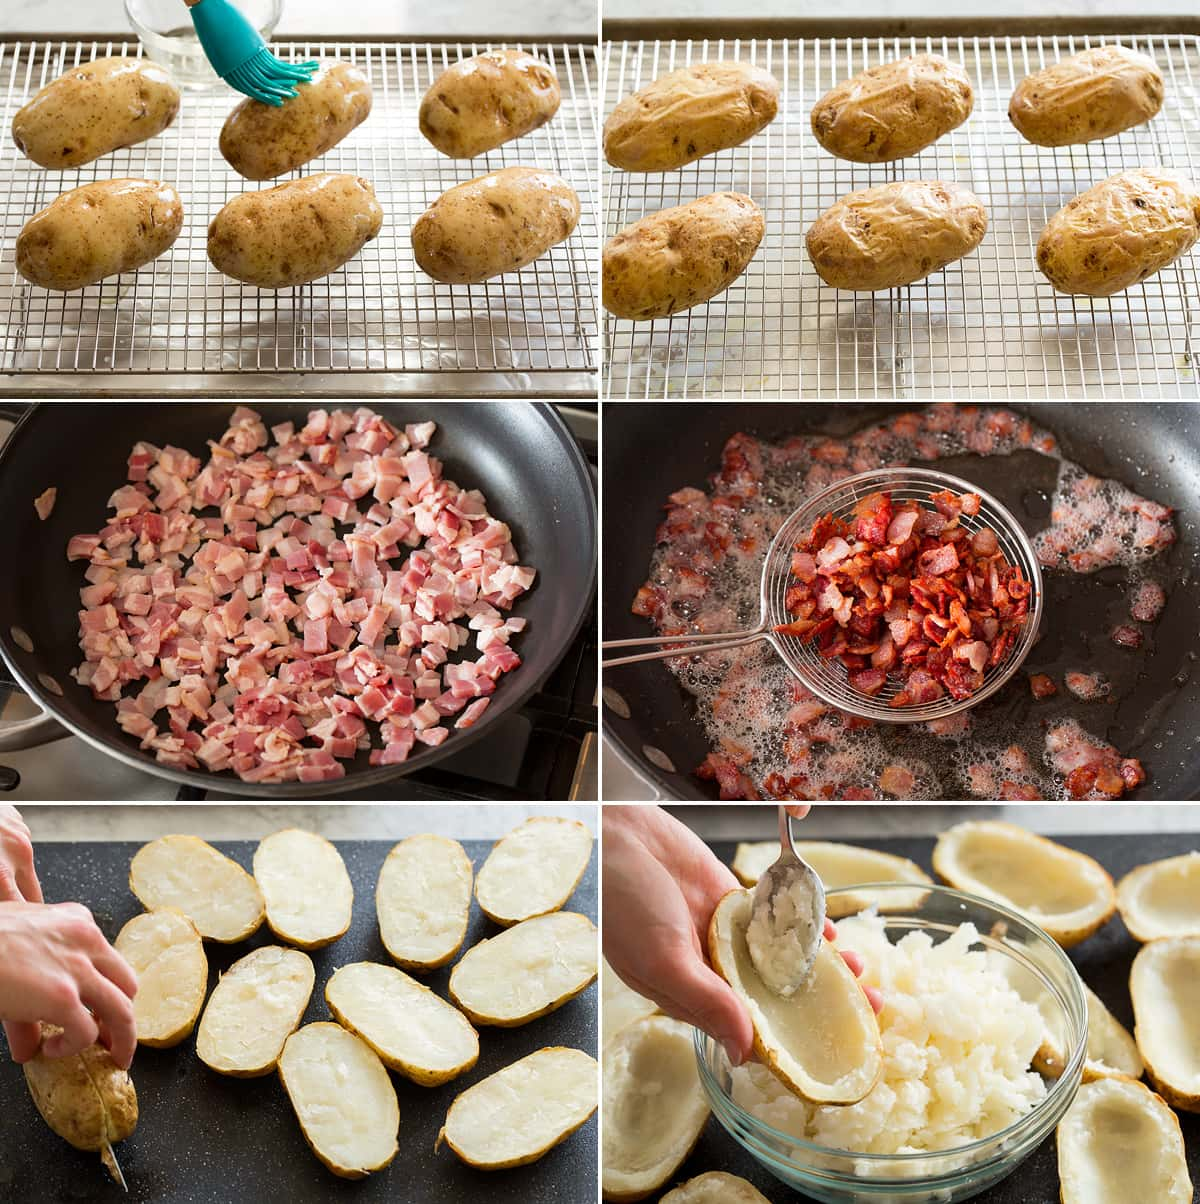 Collage of six images showing first six steps of making potato skins. Includes brushing potatoes with oil, shows after baking. Then diced bacon shown before and after cooking in skillet. Last photos show halving baked potatoes and scooping out flesh.